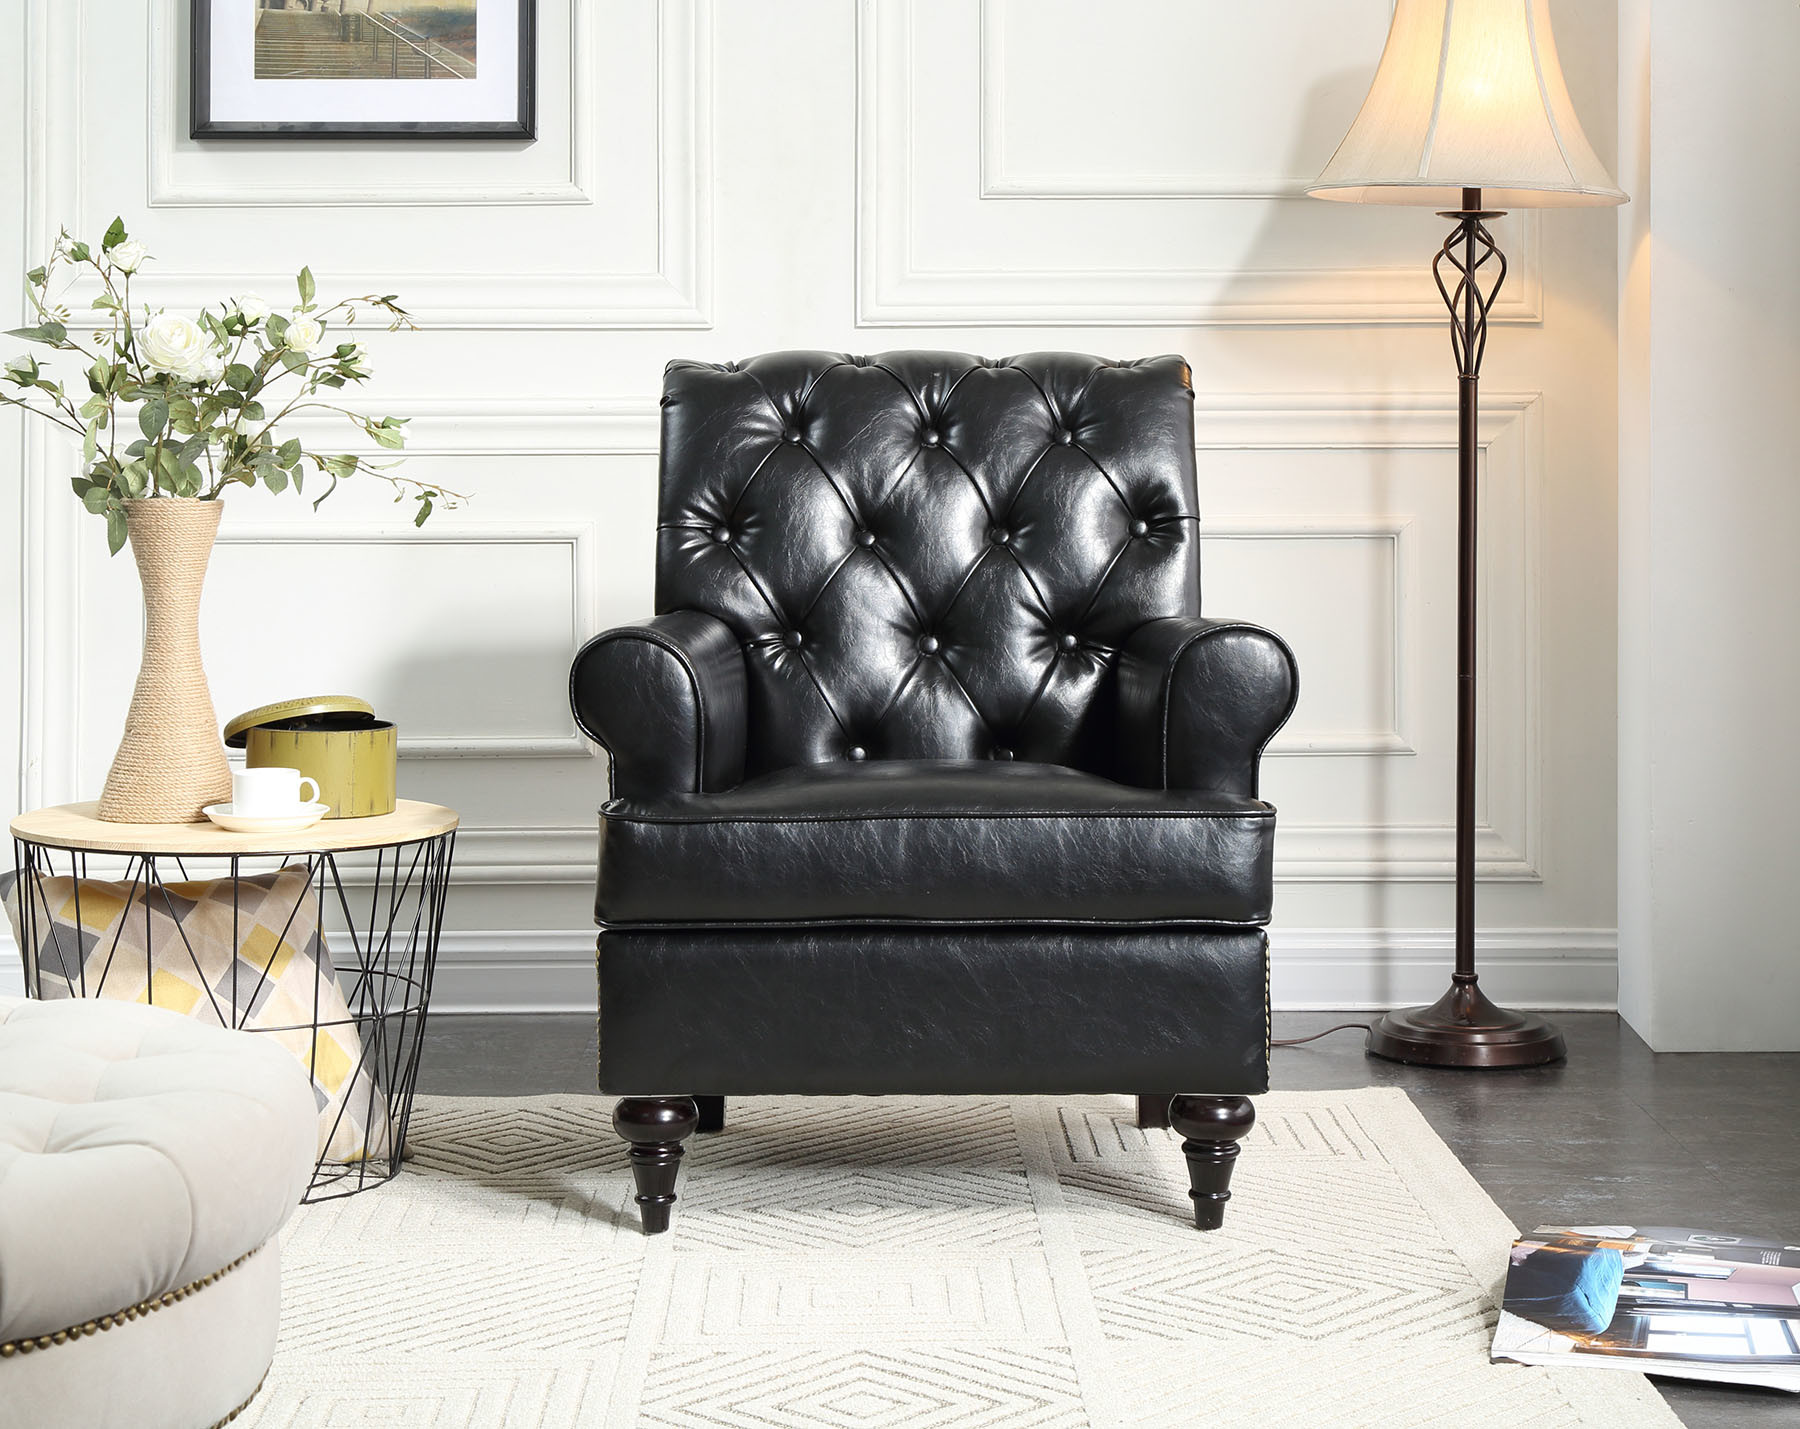 Stupendous Hot Item Home Furniture Living Room Button Leather Sofa Chair Ibusinesslaw Wood Chair Design Ideas Ibusinesslaworg